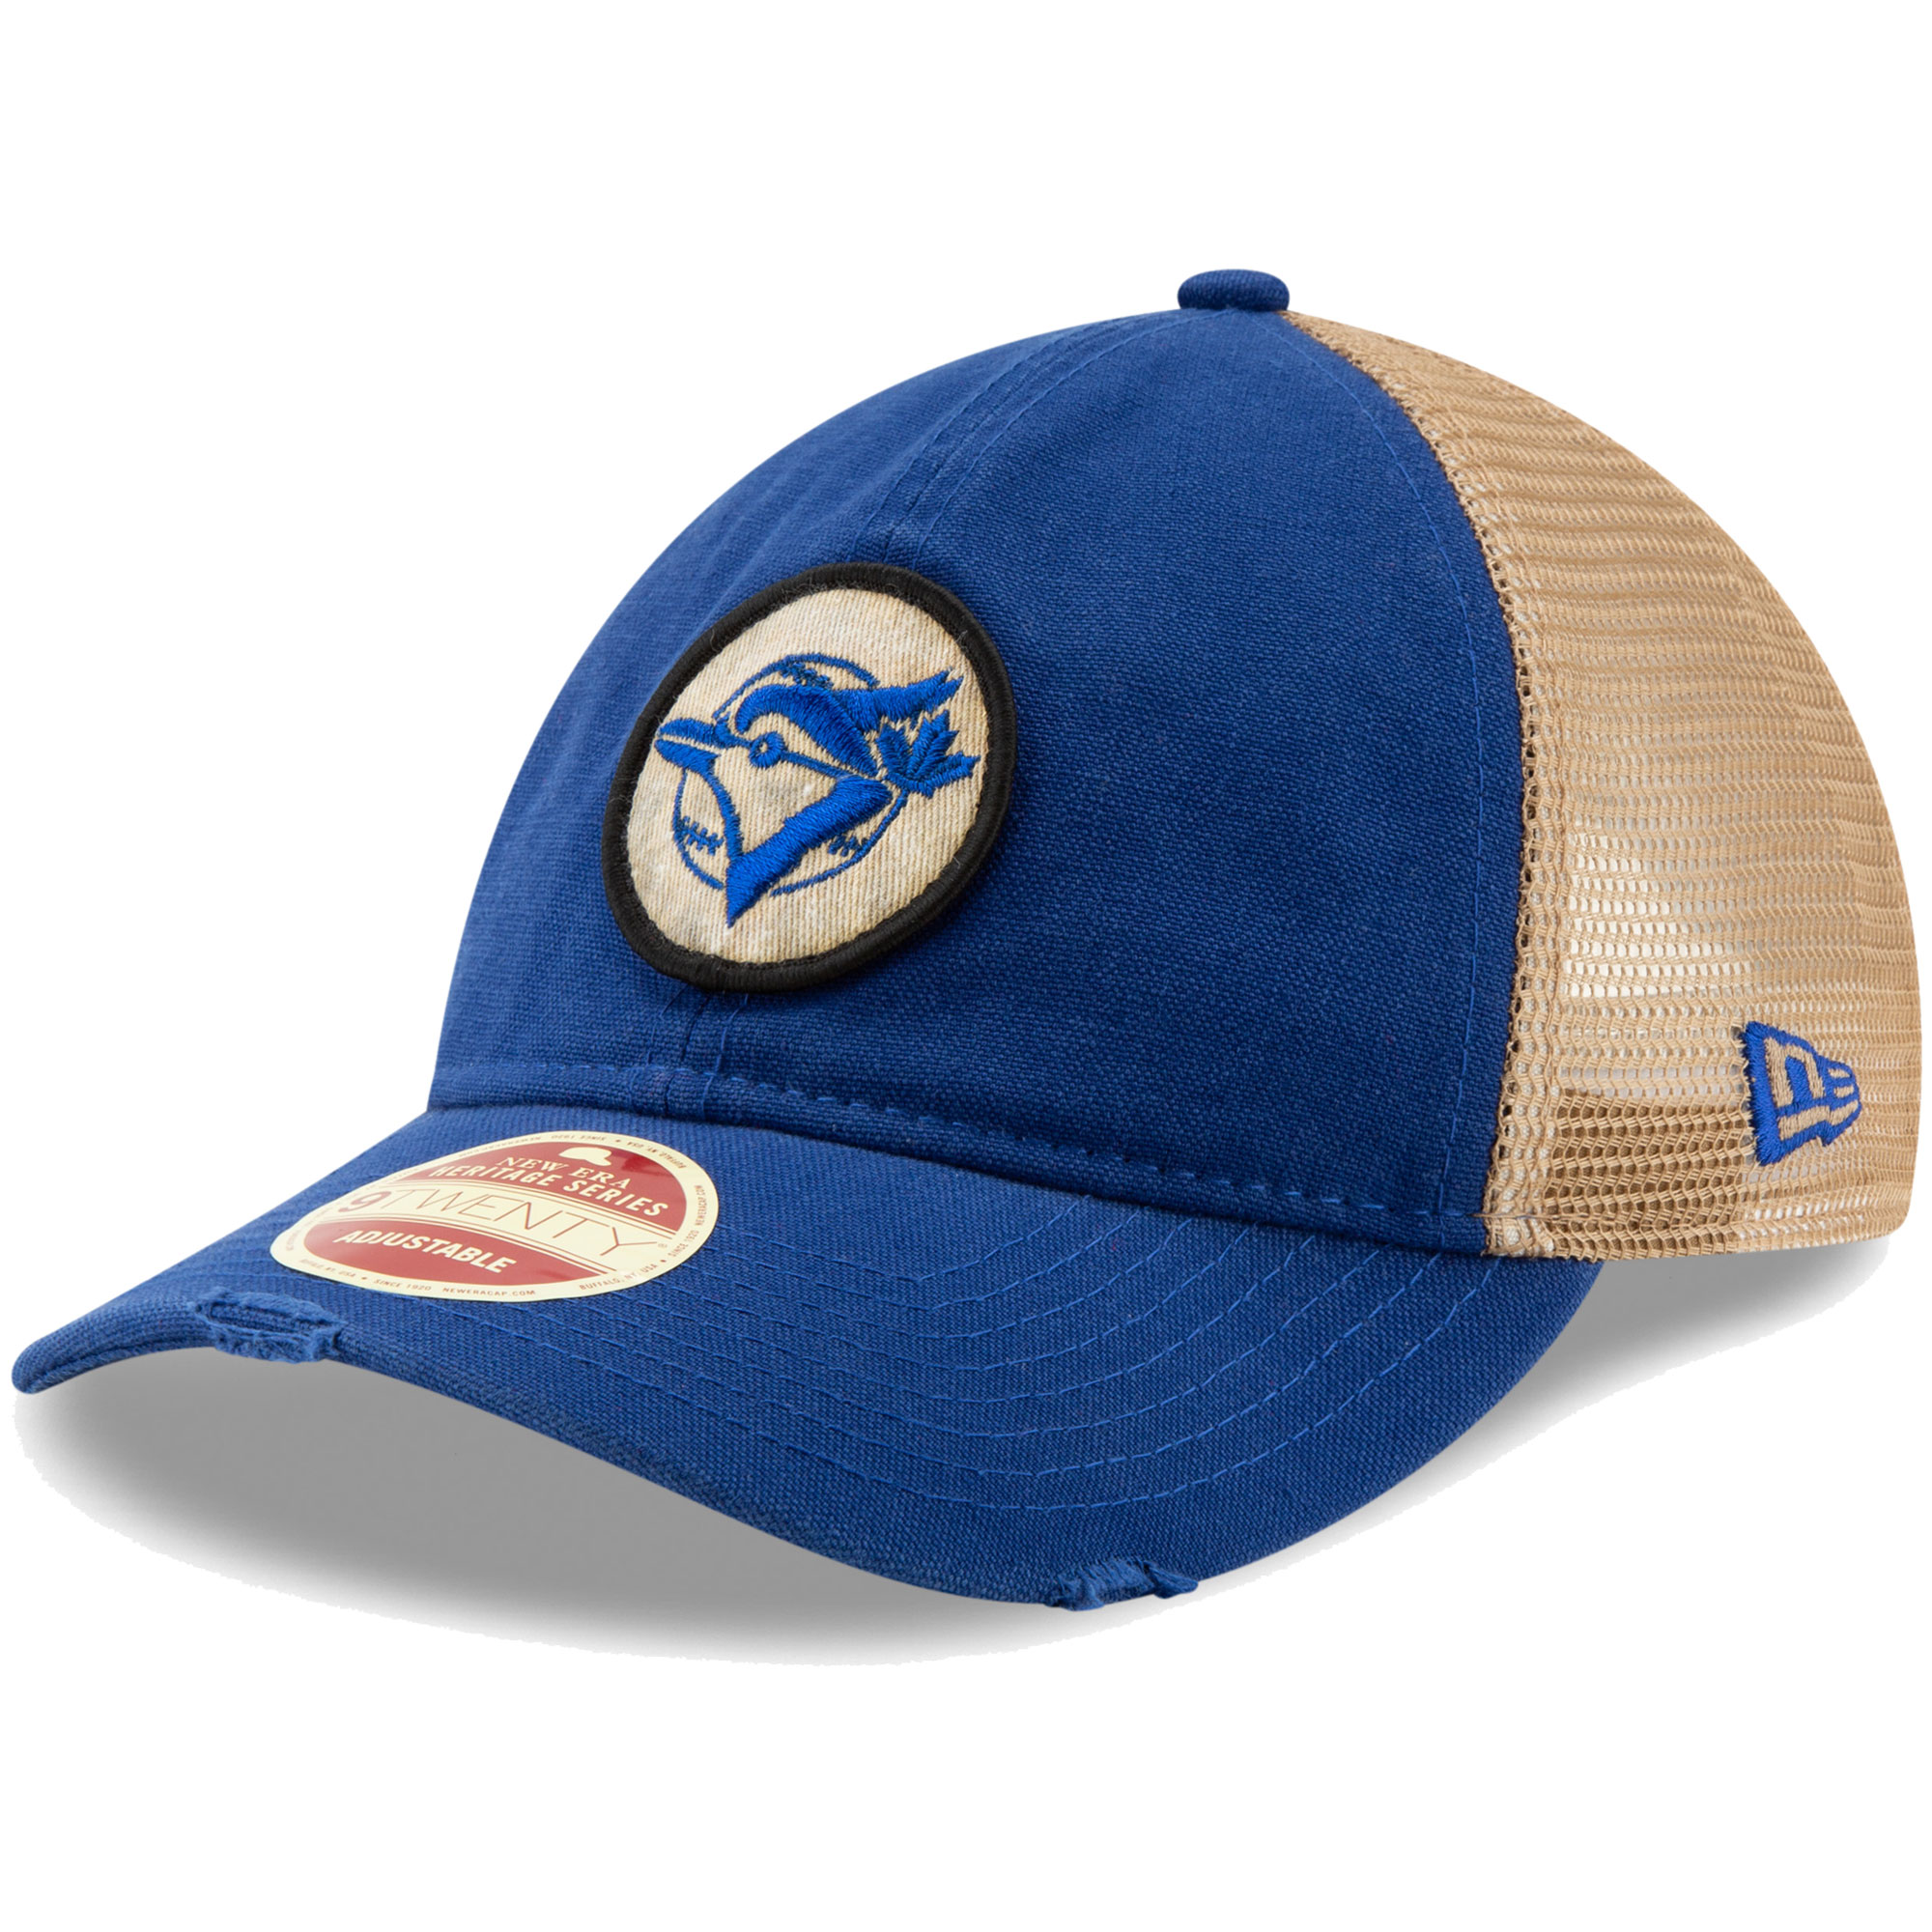 Toronto Blue Jays New Era Cooperstown Collection Front Patched Trucker 9TWENTY Adjustable Hat - Royal - OSFA